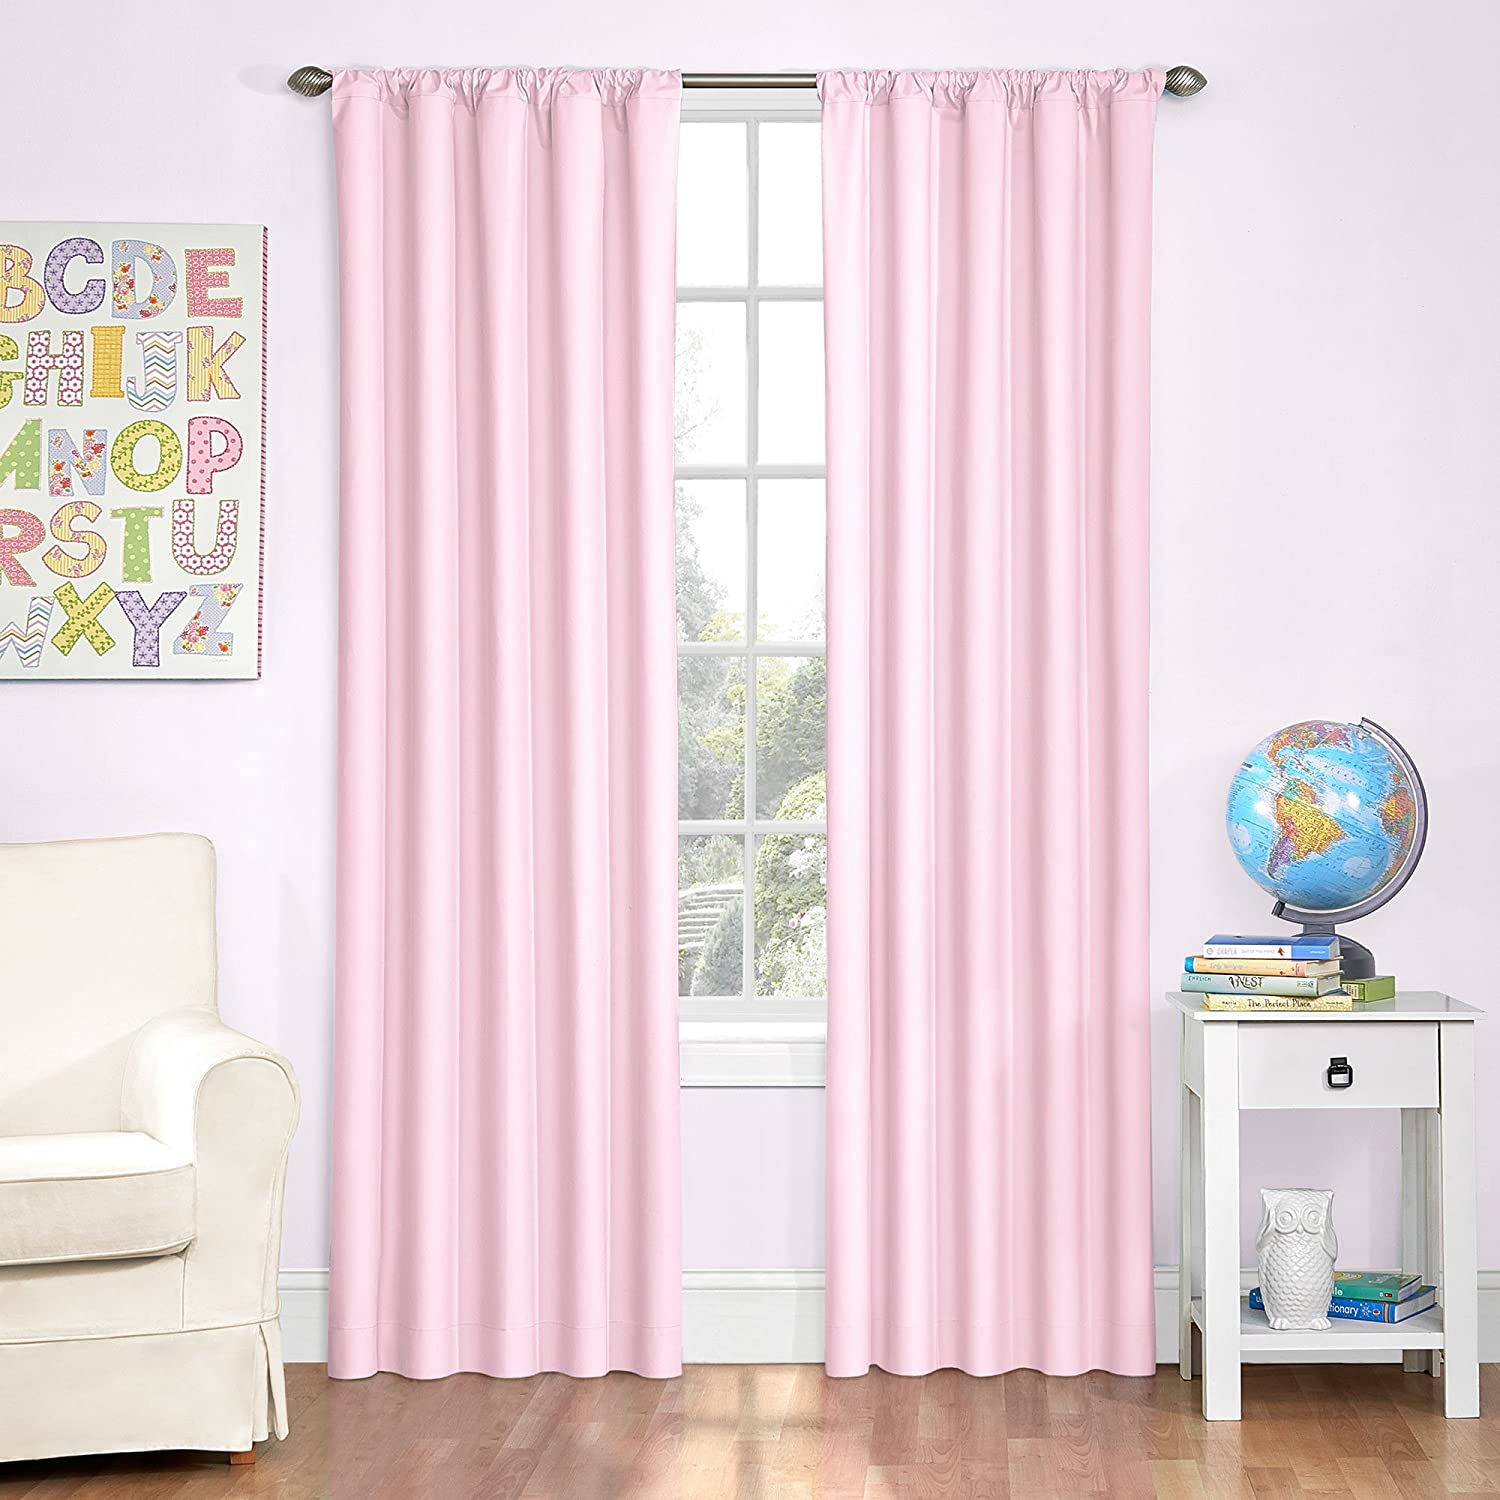 Amazon.com: Eclipse Kids Microfiber Room Darkening Window Curtain Panel, 42  By 84 Inch, Pink: Home U0026 Kitchen